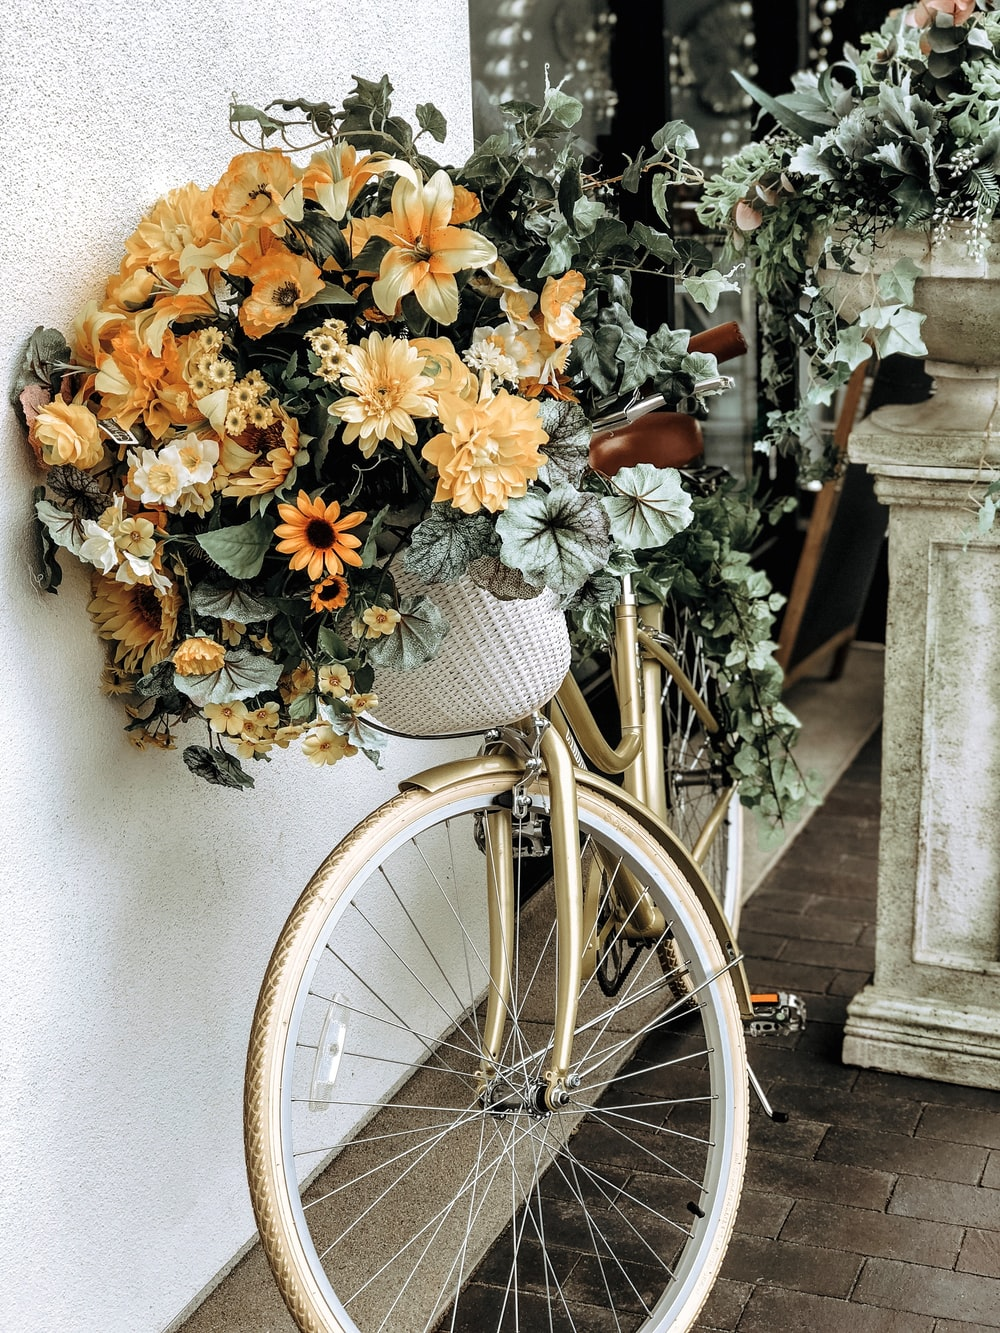 flowers on bicycle's basket